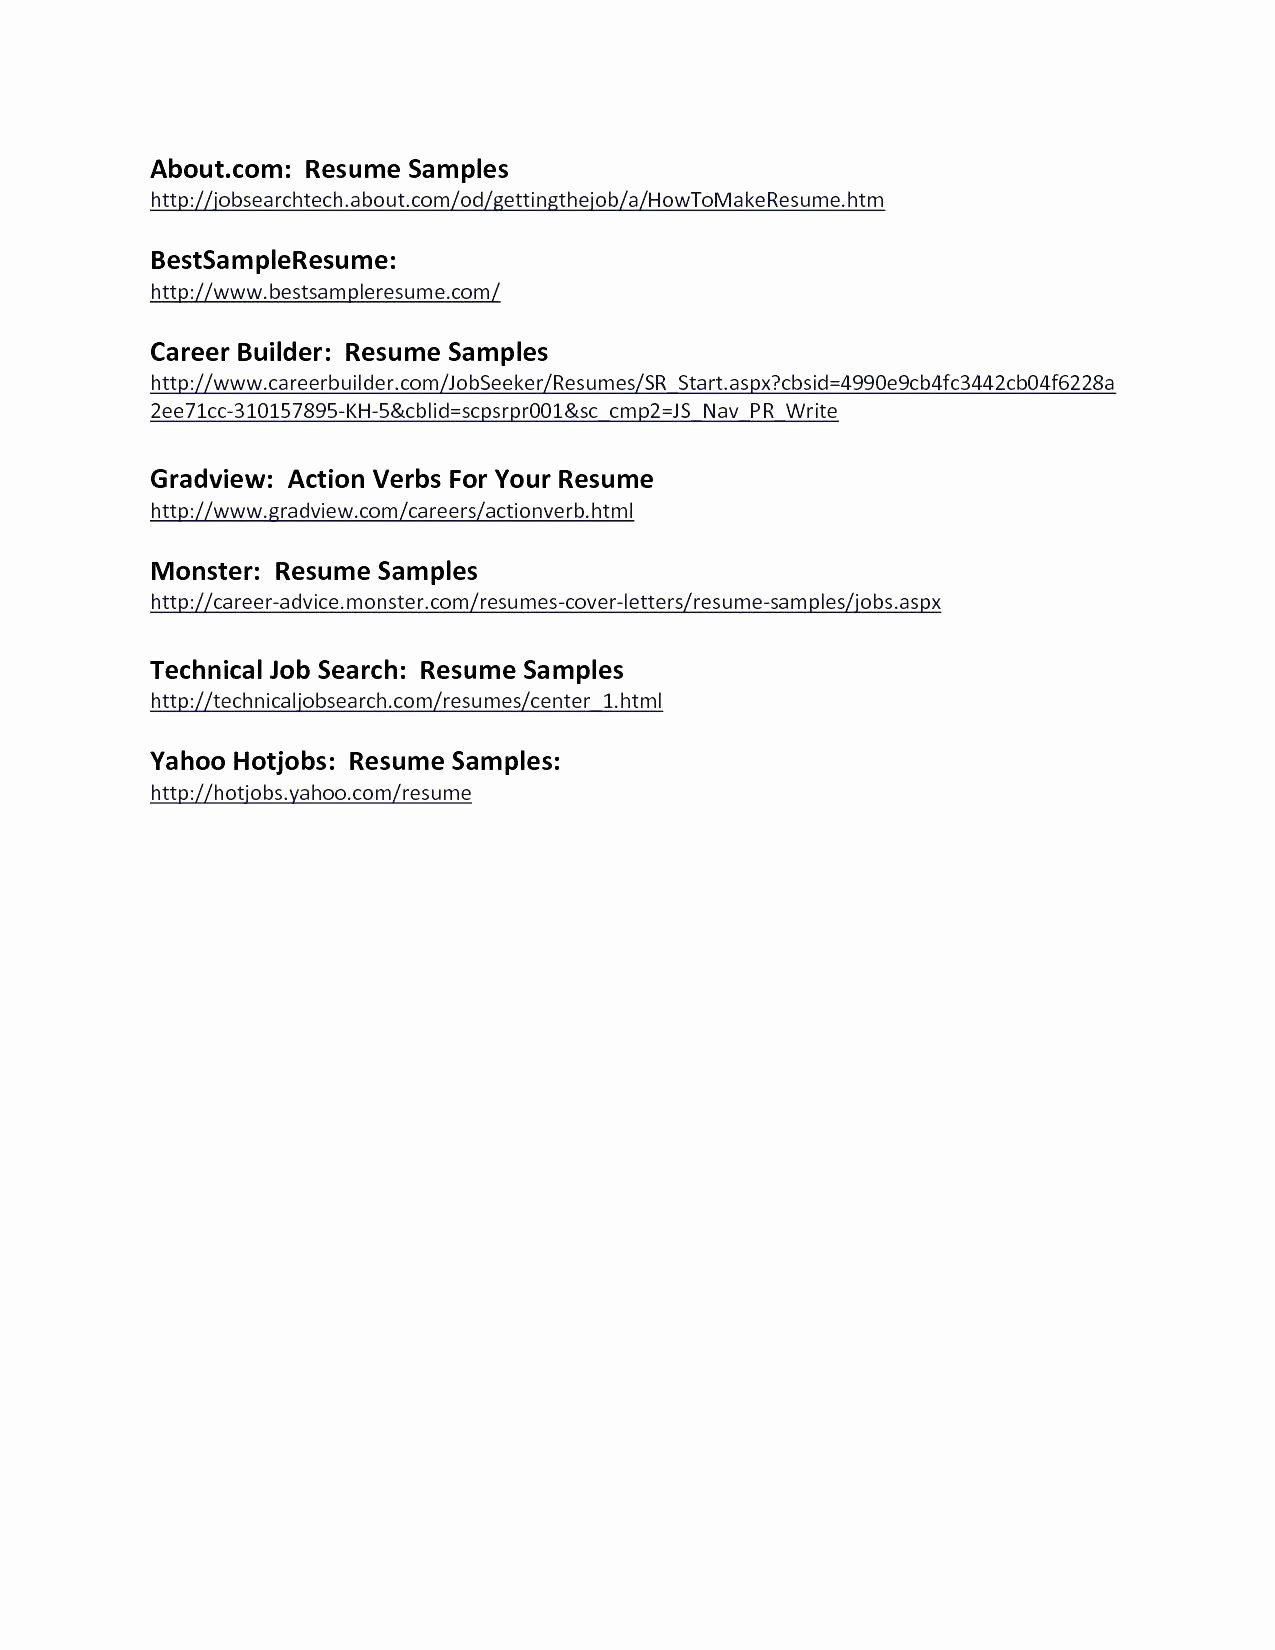 College Student Resume Sample - Resume Example for College Student Refrence Good Resume for College